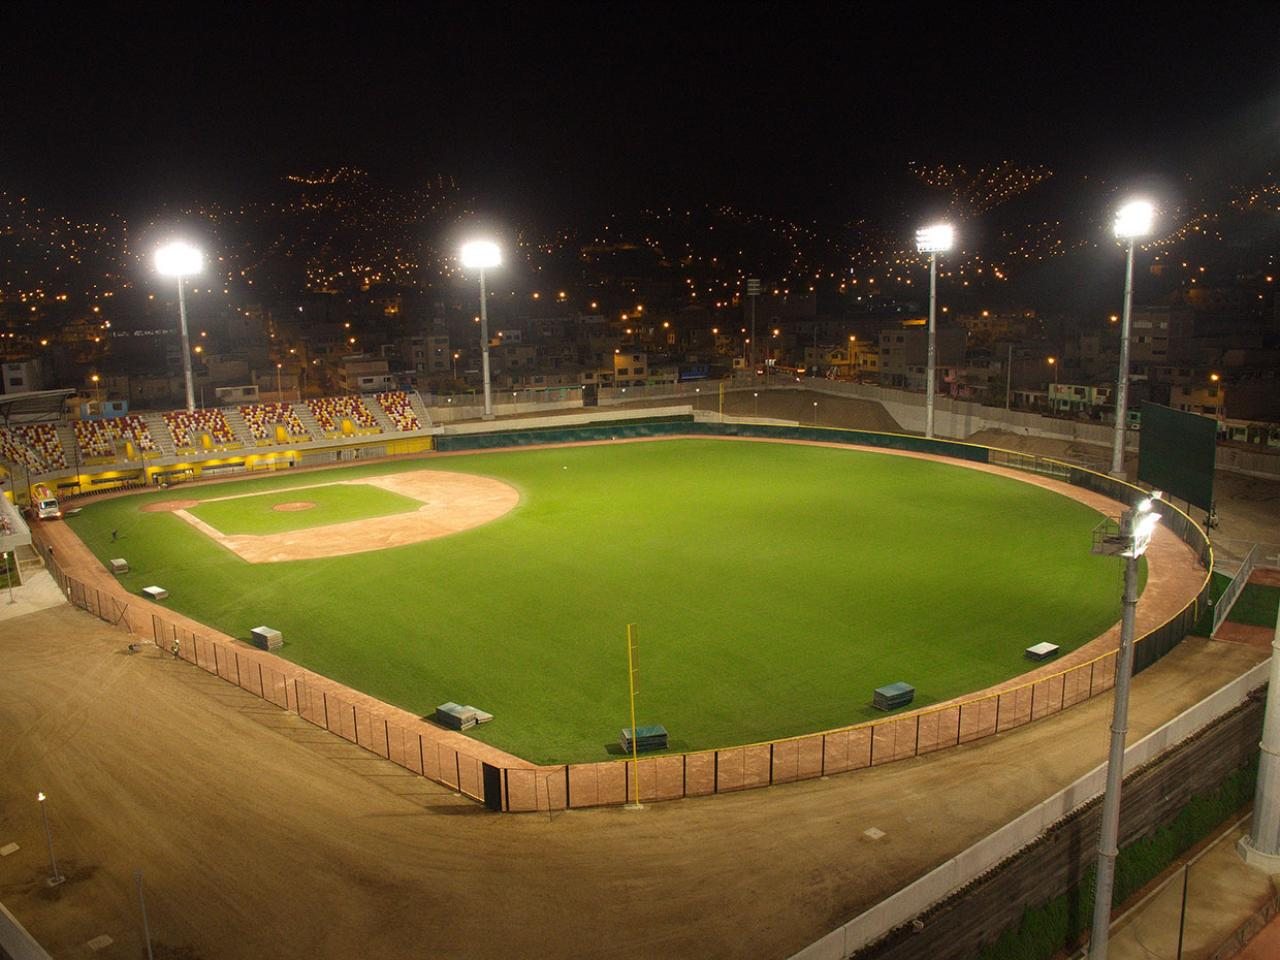 Schreder lighting solutions will ensure perfect visibility for athletes and spectators watching the 2019 Pan American Games